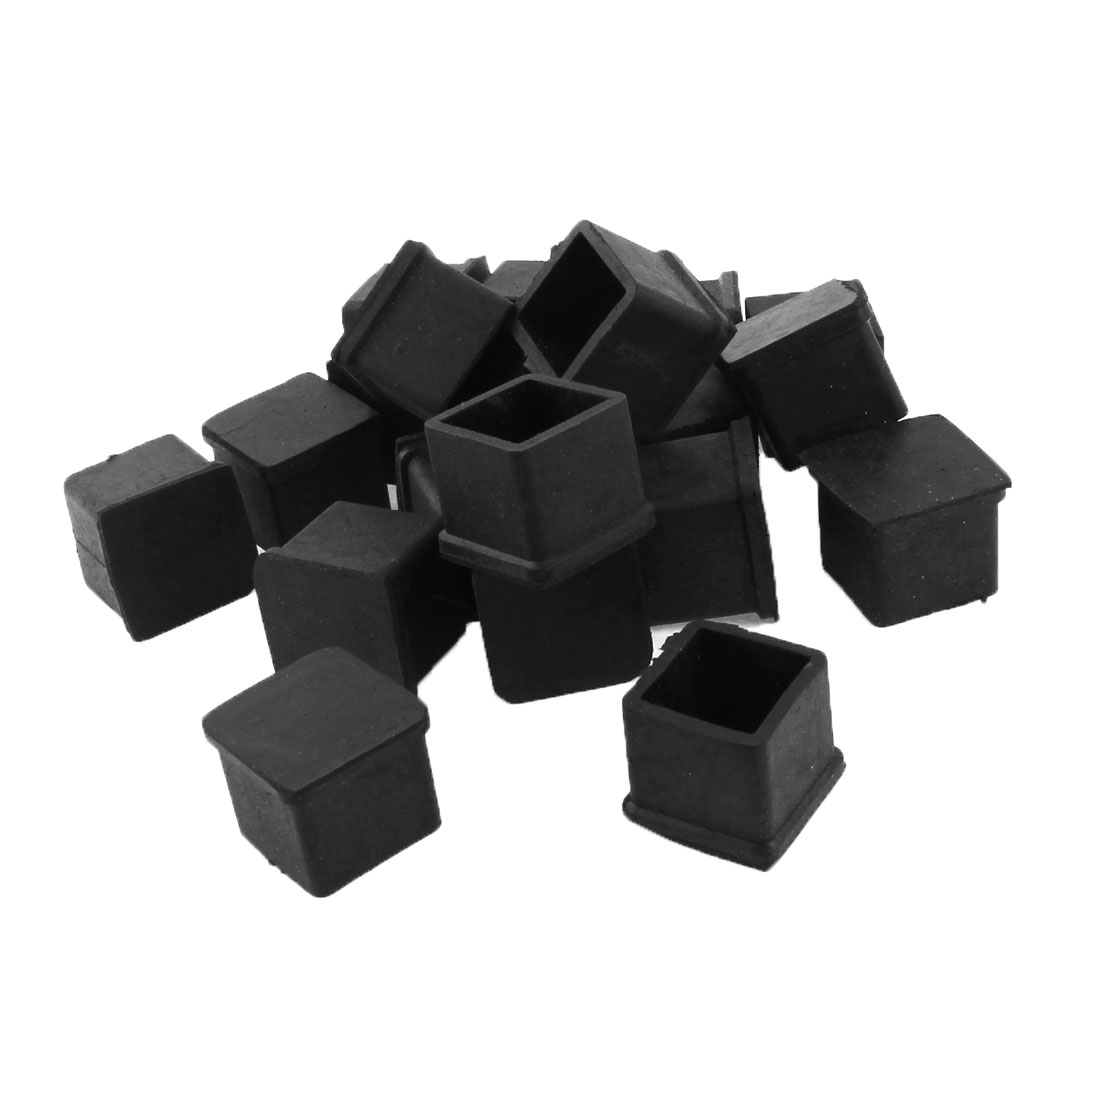 Chair Table Square Leg Black Rubber Foot Covers 20mm x 20mm 20pcs